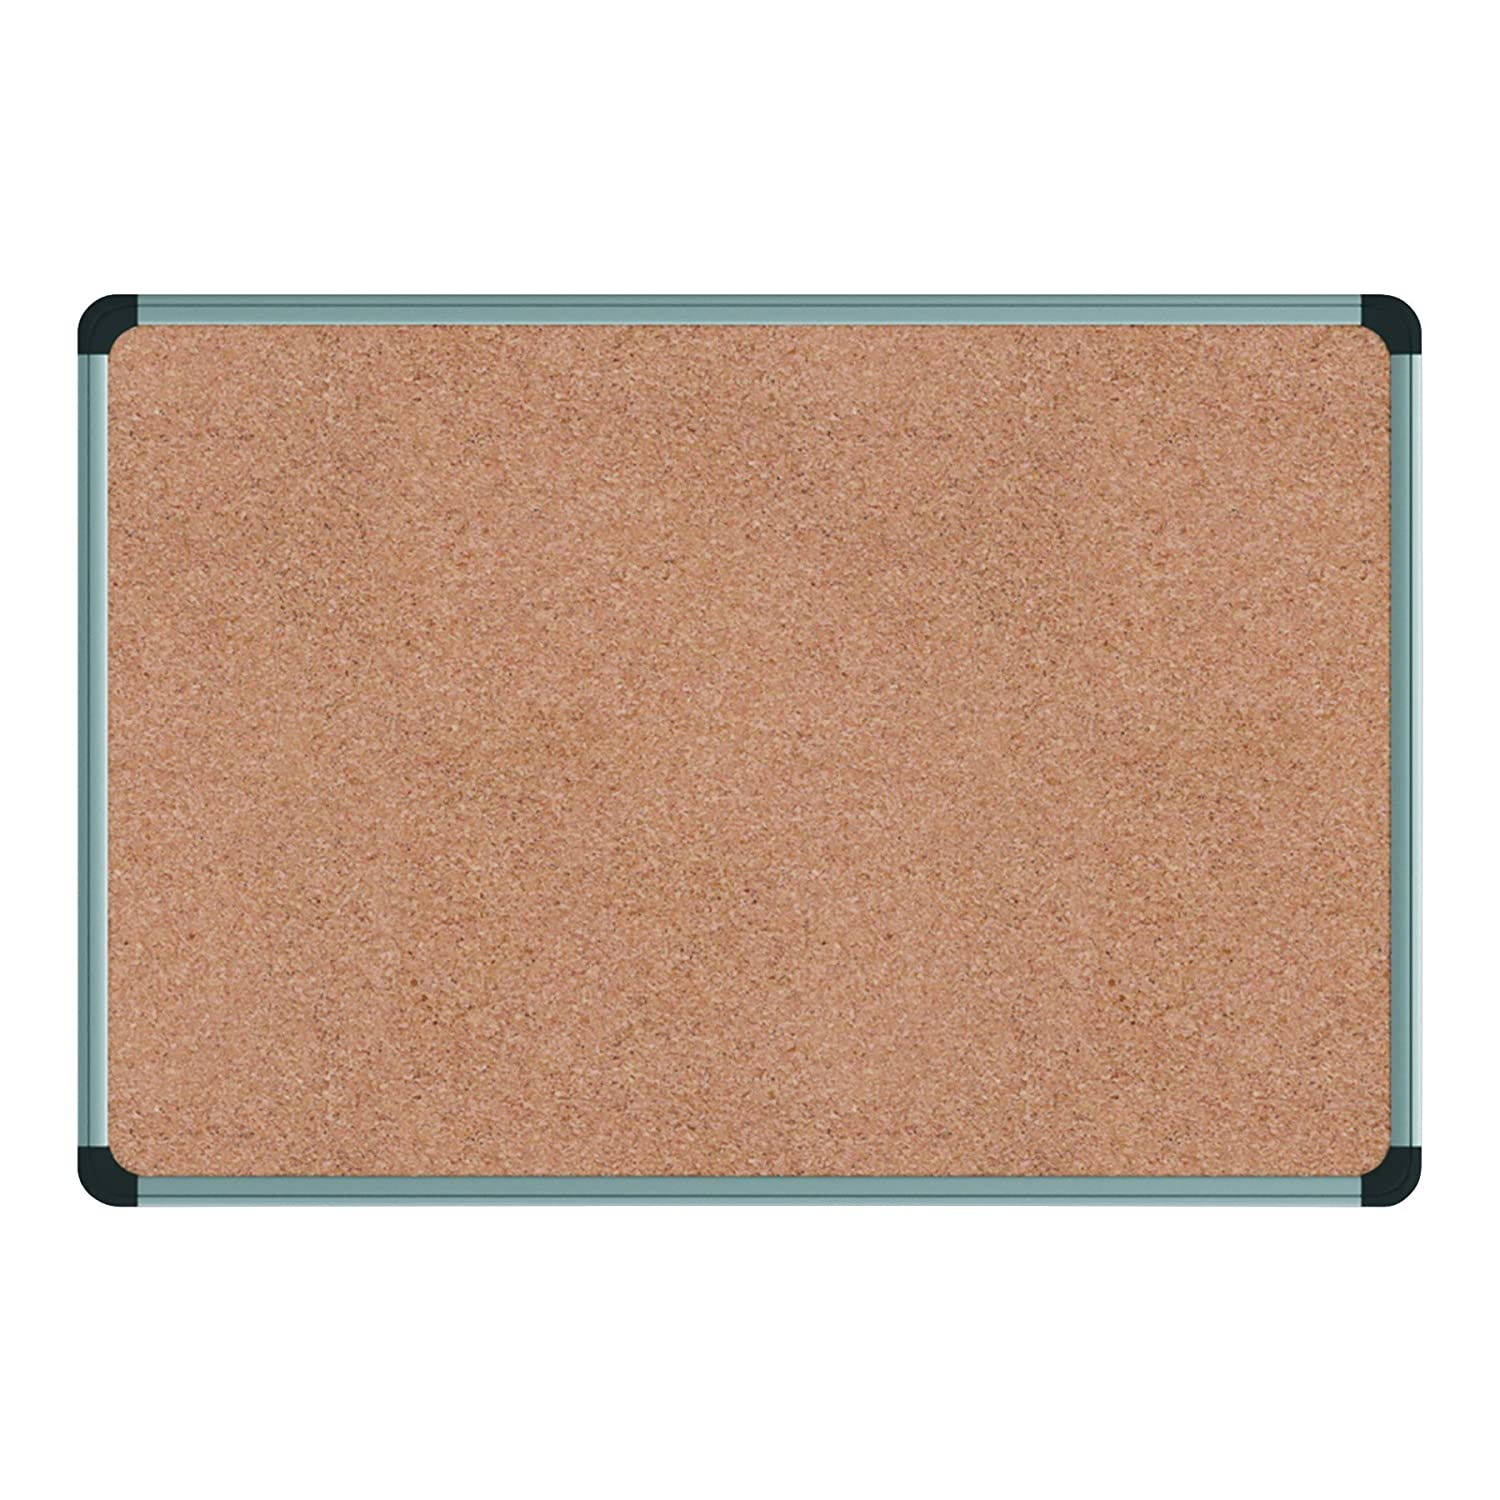 Universal 43714 Cork Board with Aluminum Frame, 48 x 36, Natural, Silver Frame United Stationers - Drop Ship